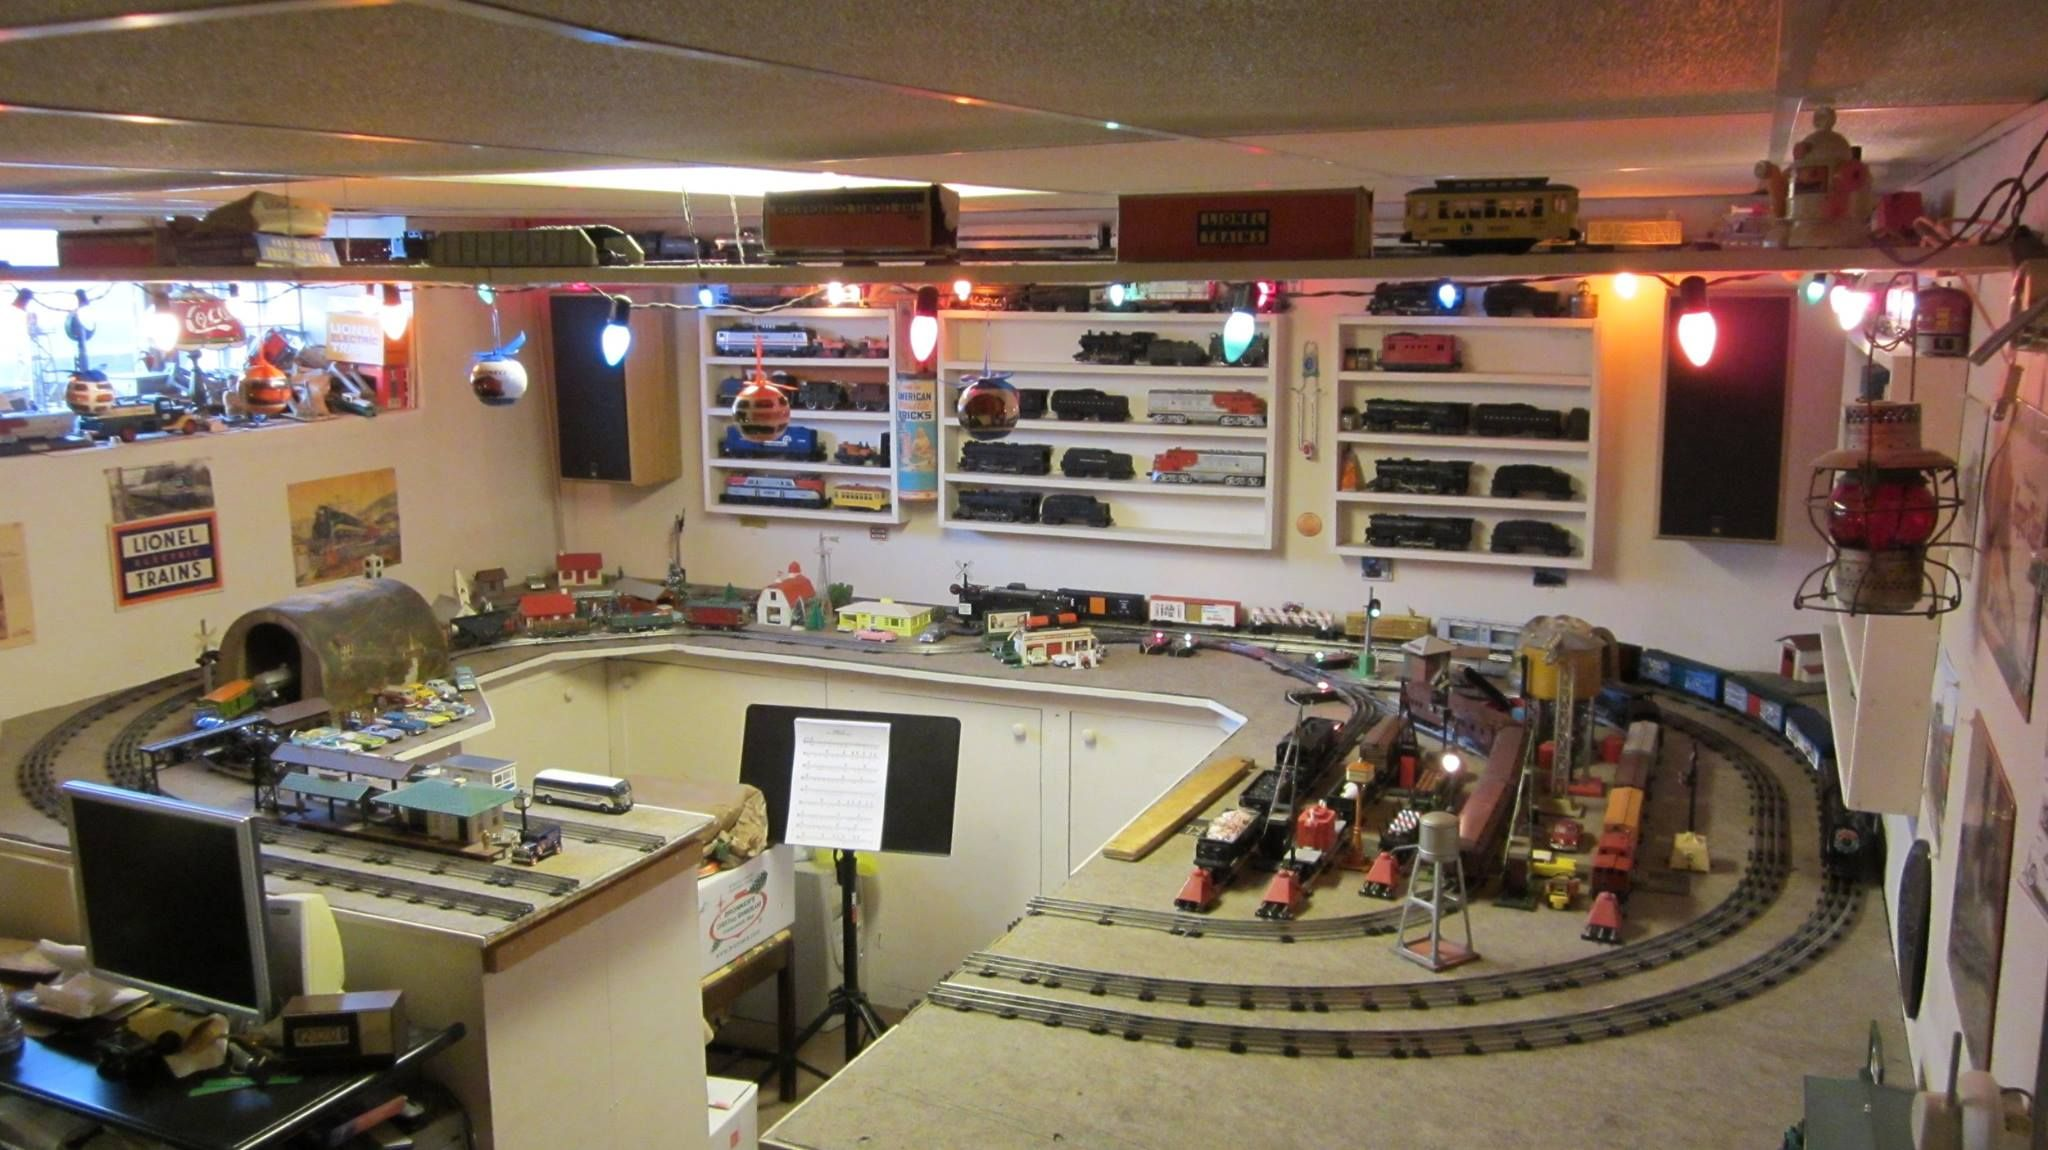 Cbl Crappy Basement Layout The Term Comes From O Gauge Wiring Railroading Magazine Forum If You Have A And Your Happens To Be